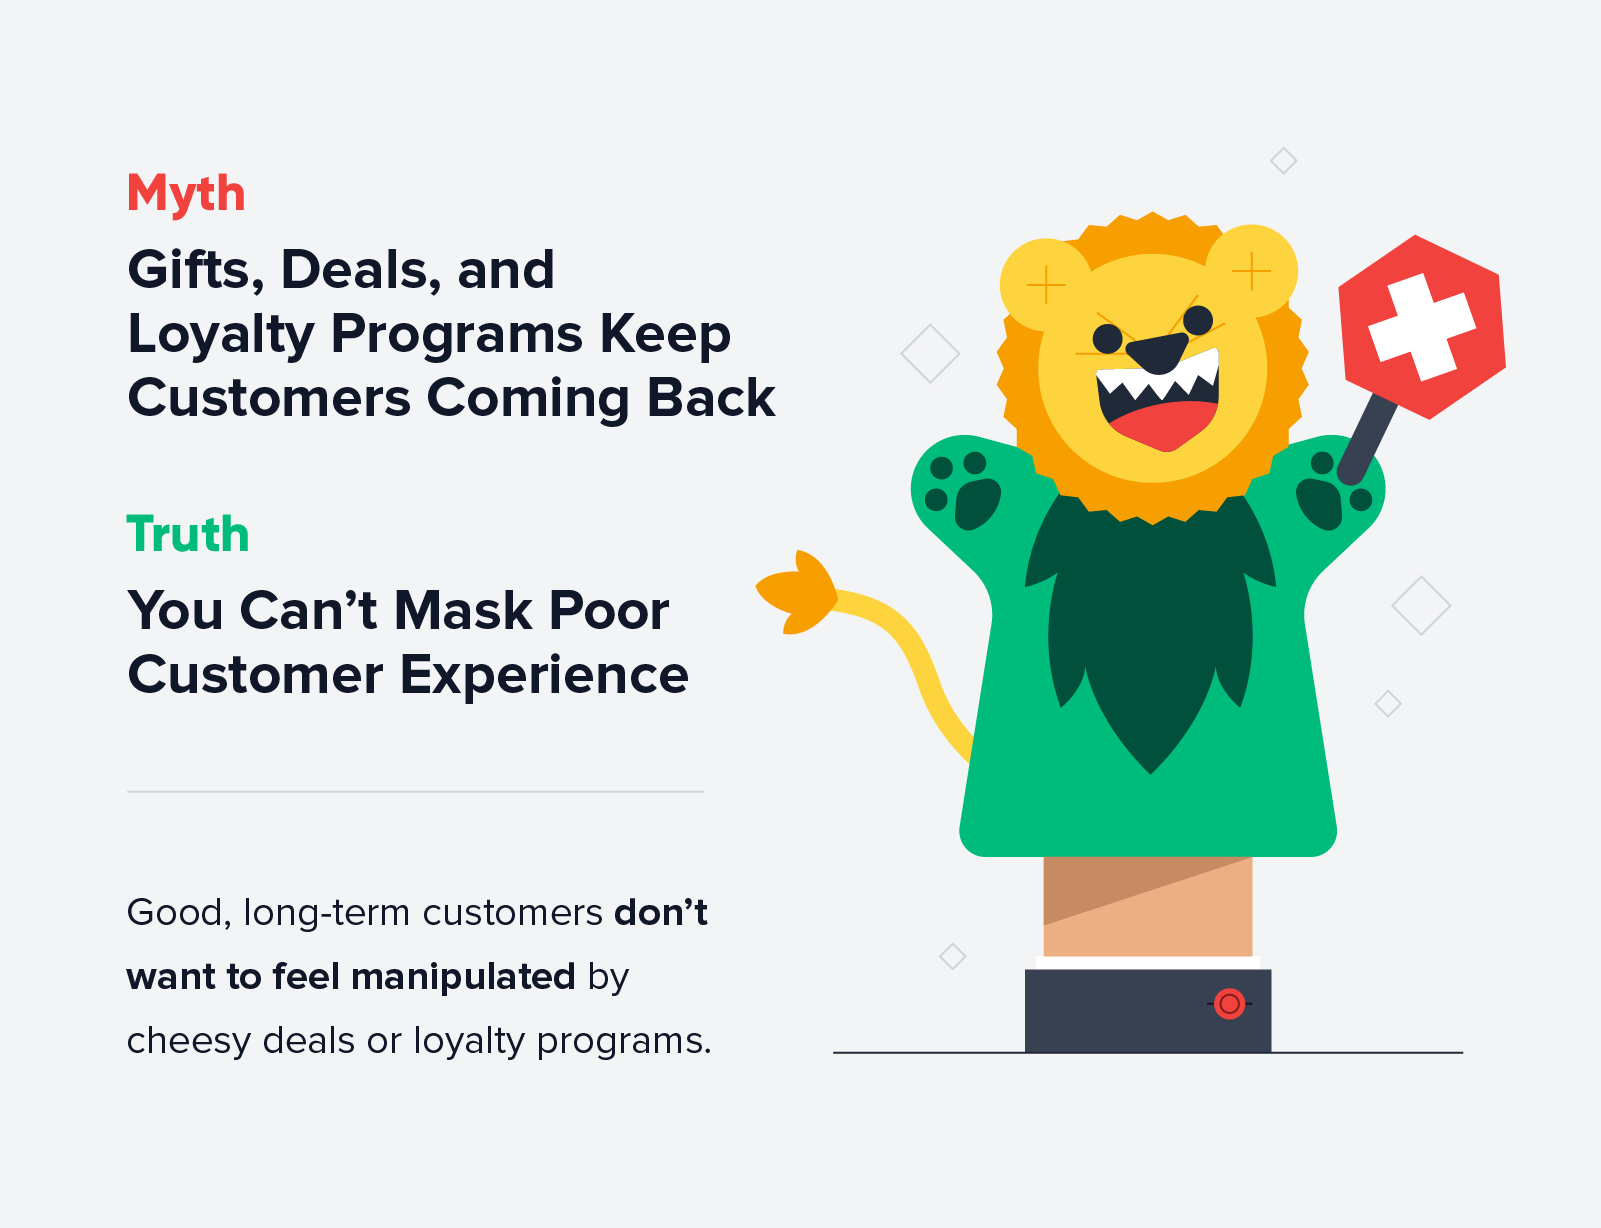 You can't mask poor customer experience